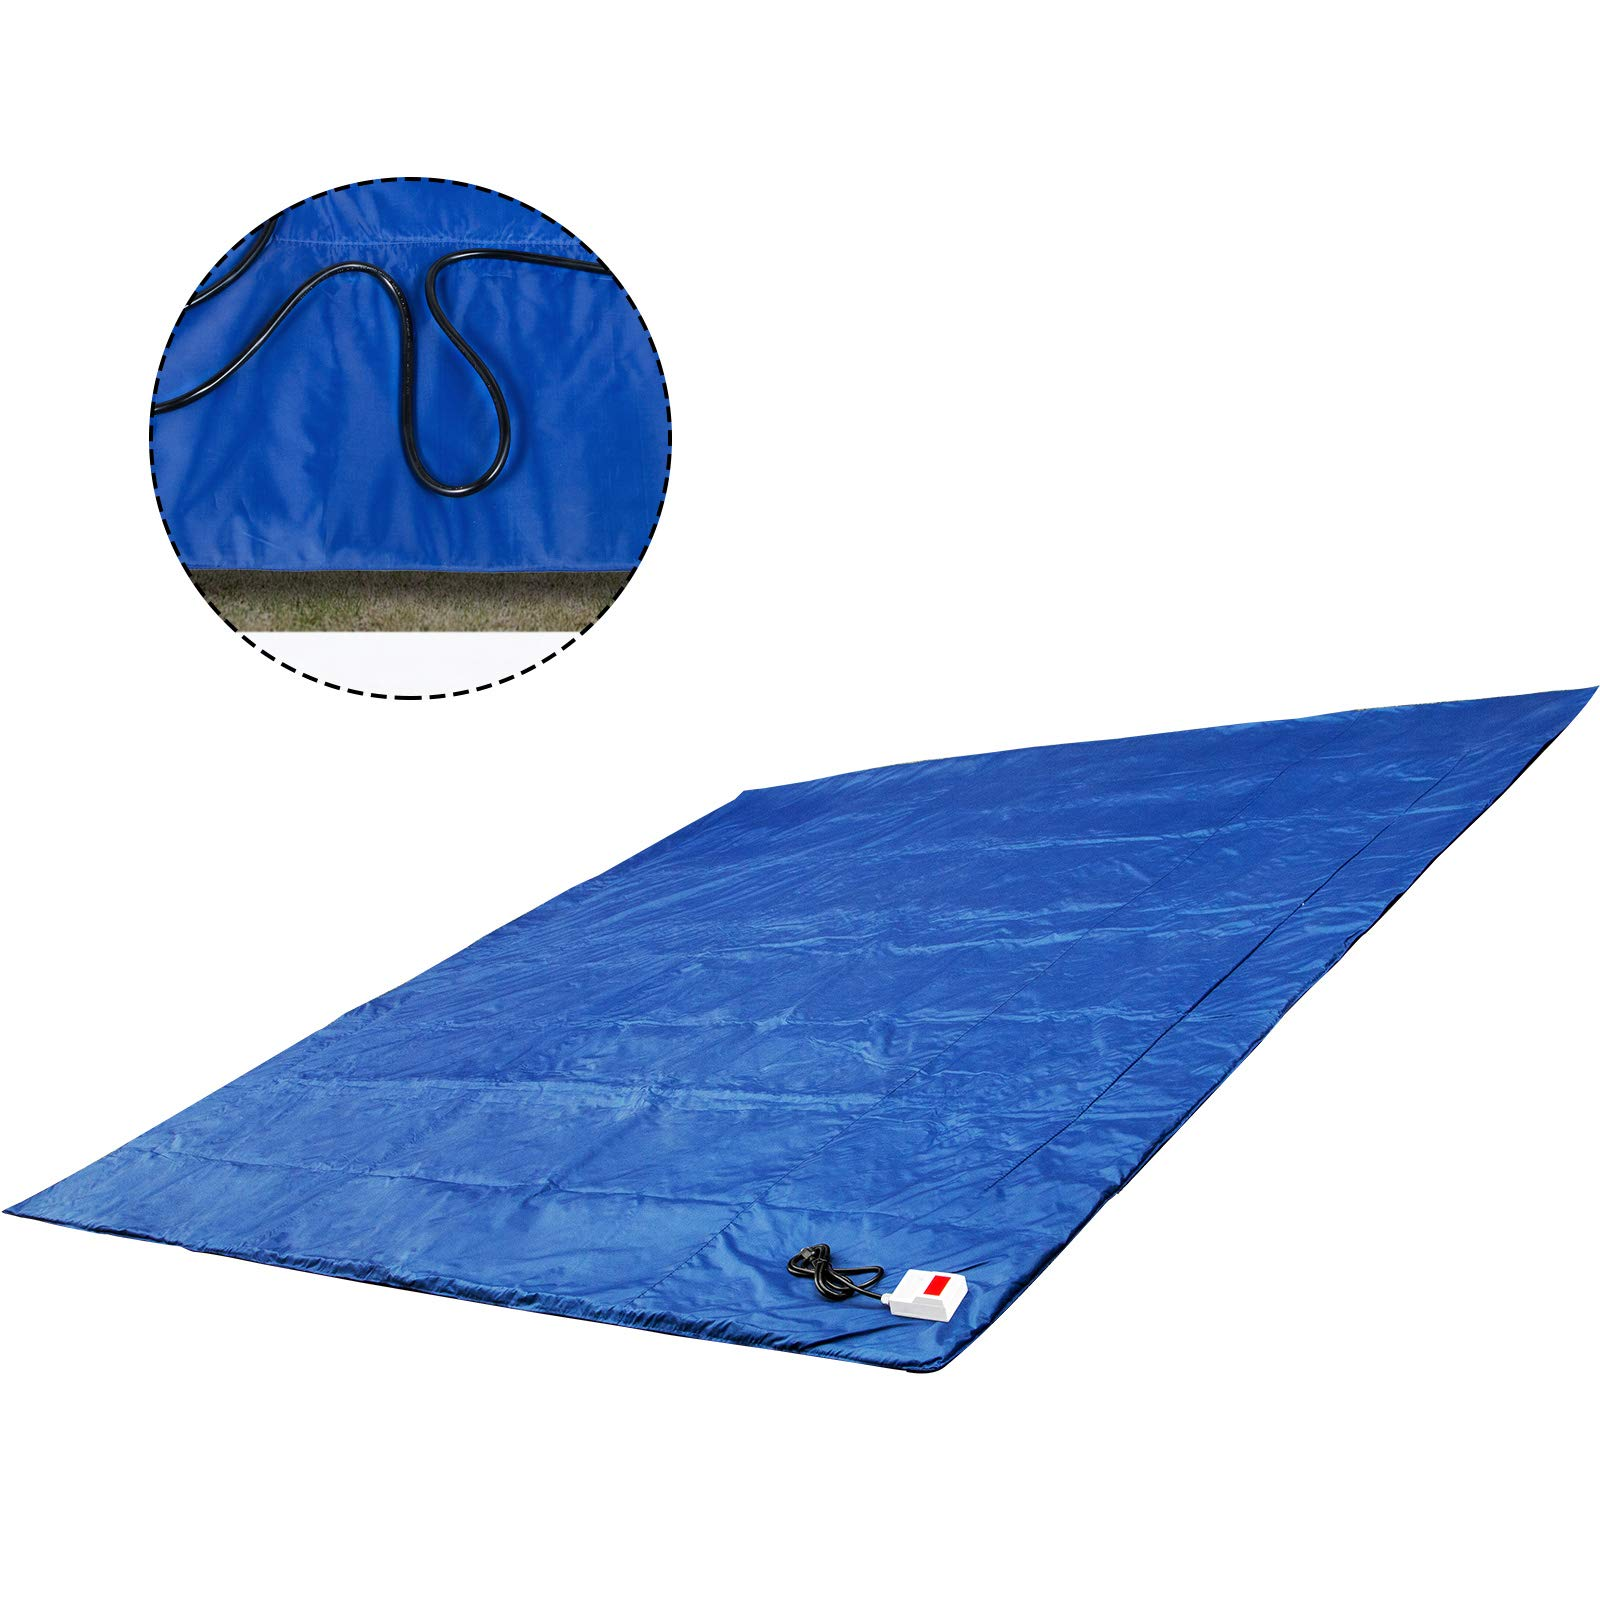 Bestauto Concrete Blanket Electric Concrete Curing Blanket Rapid Thaw Ground Thawing Blanket, Power Blanket Density Blanket Insulated Concrete Heater, 12' x 12' Finished Dimensions for Concrete Ground